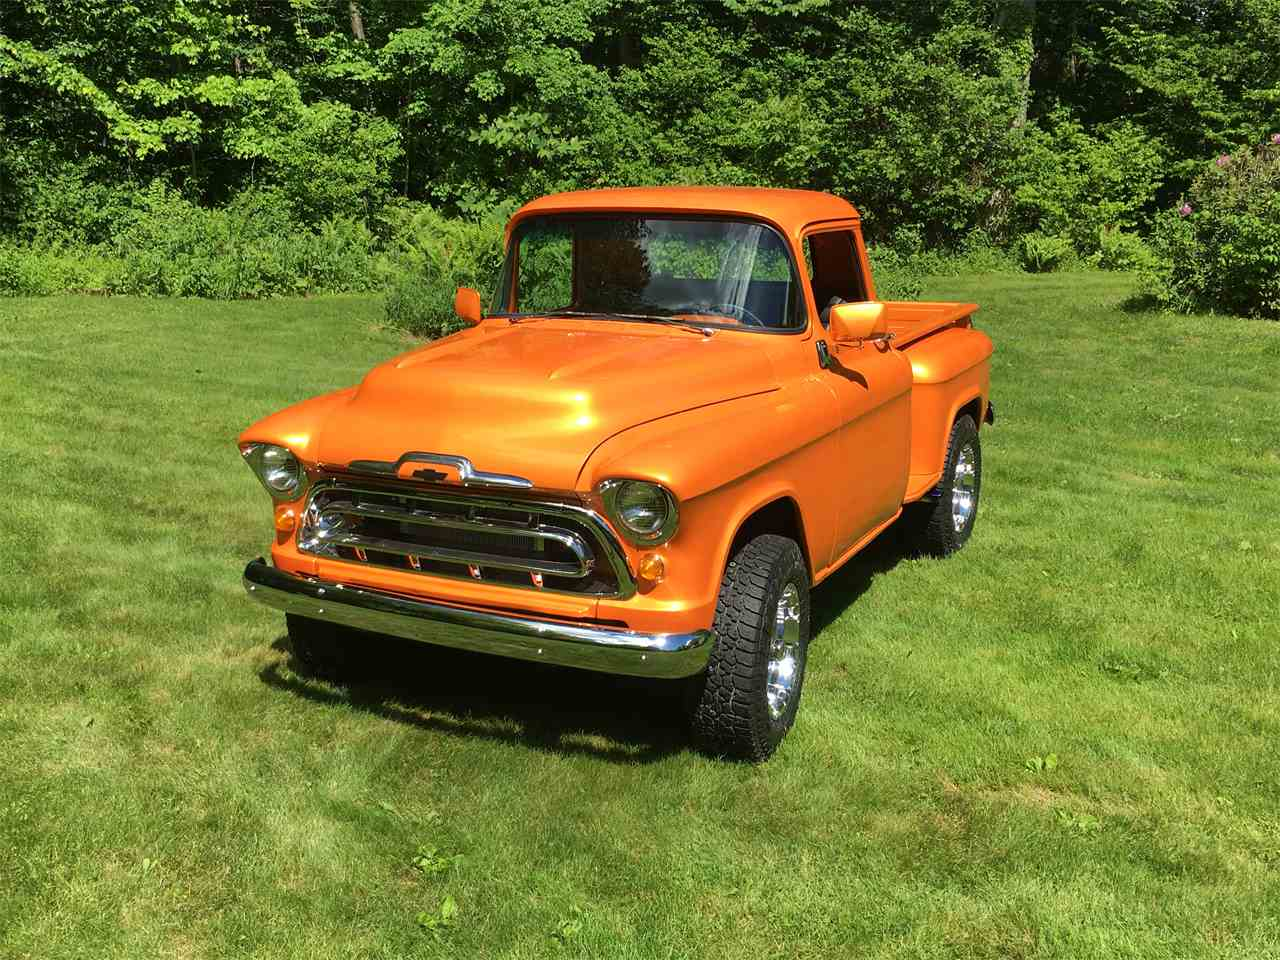 Large Picture of 1957 Chevrolet 3100 located in Connecticut - $55,000.00 Offered by a Private Seller - MP3G